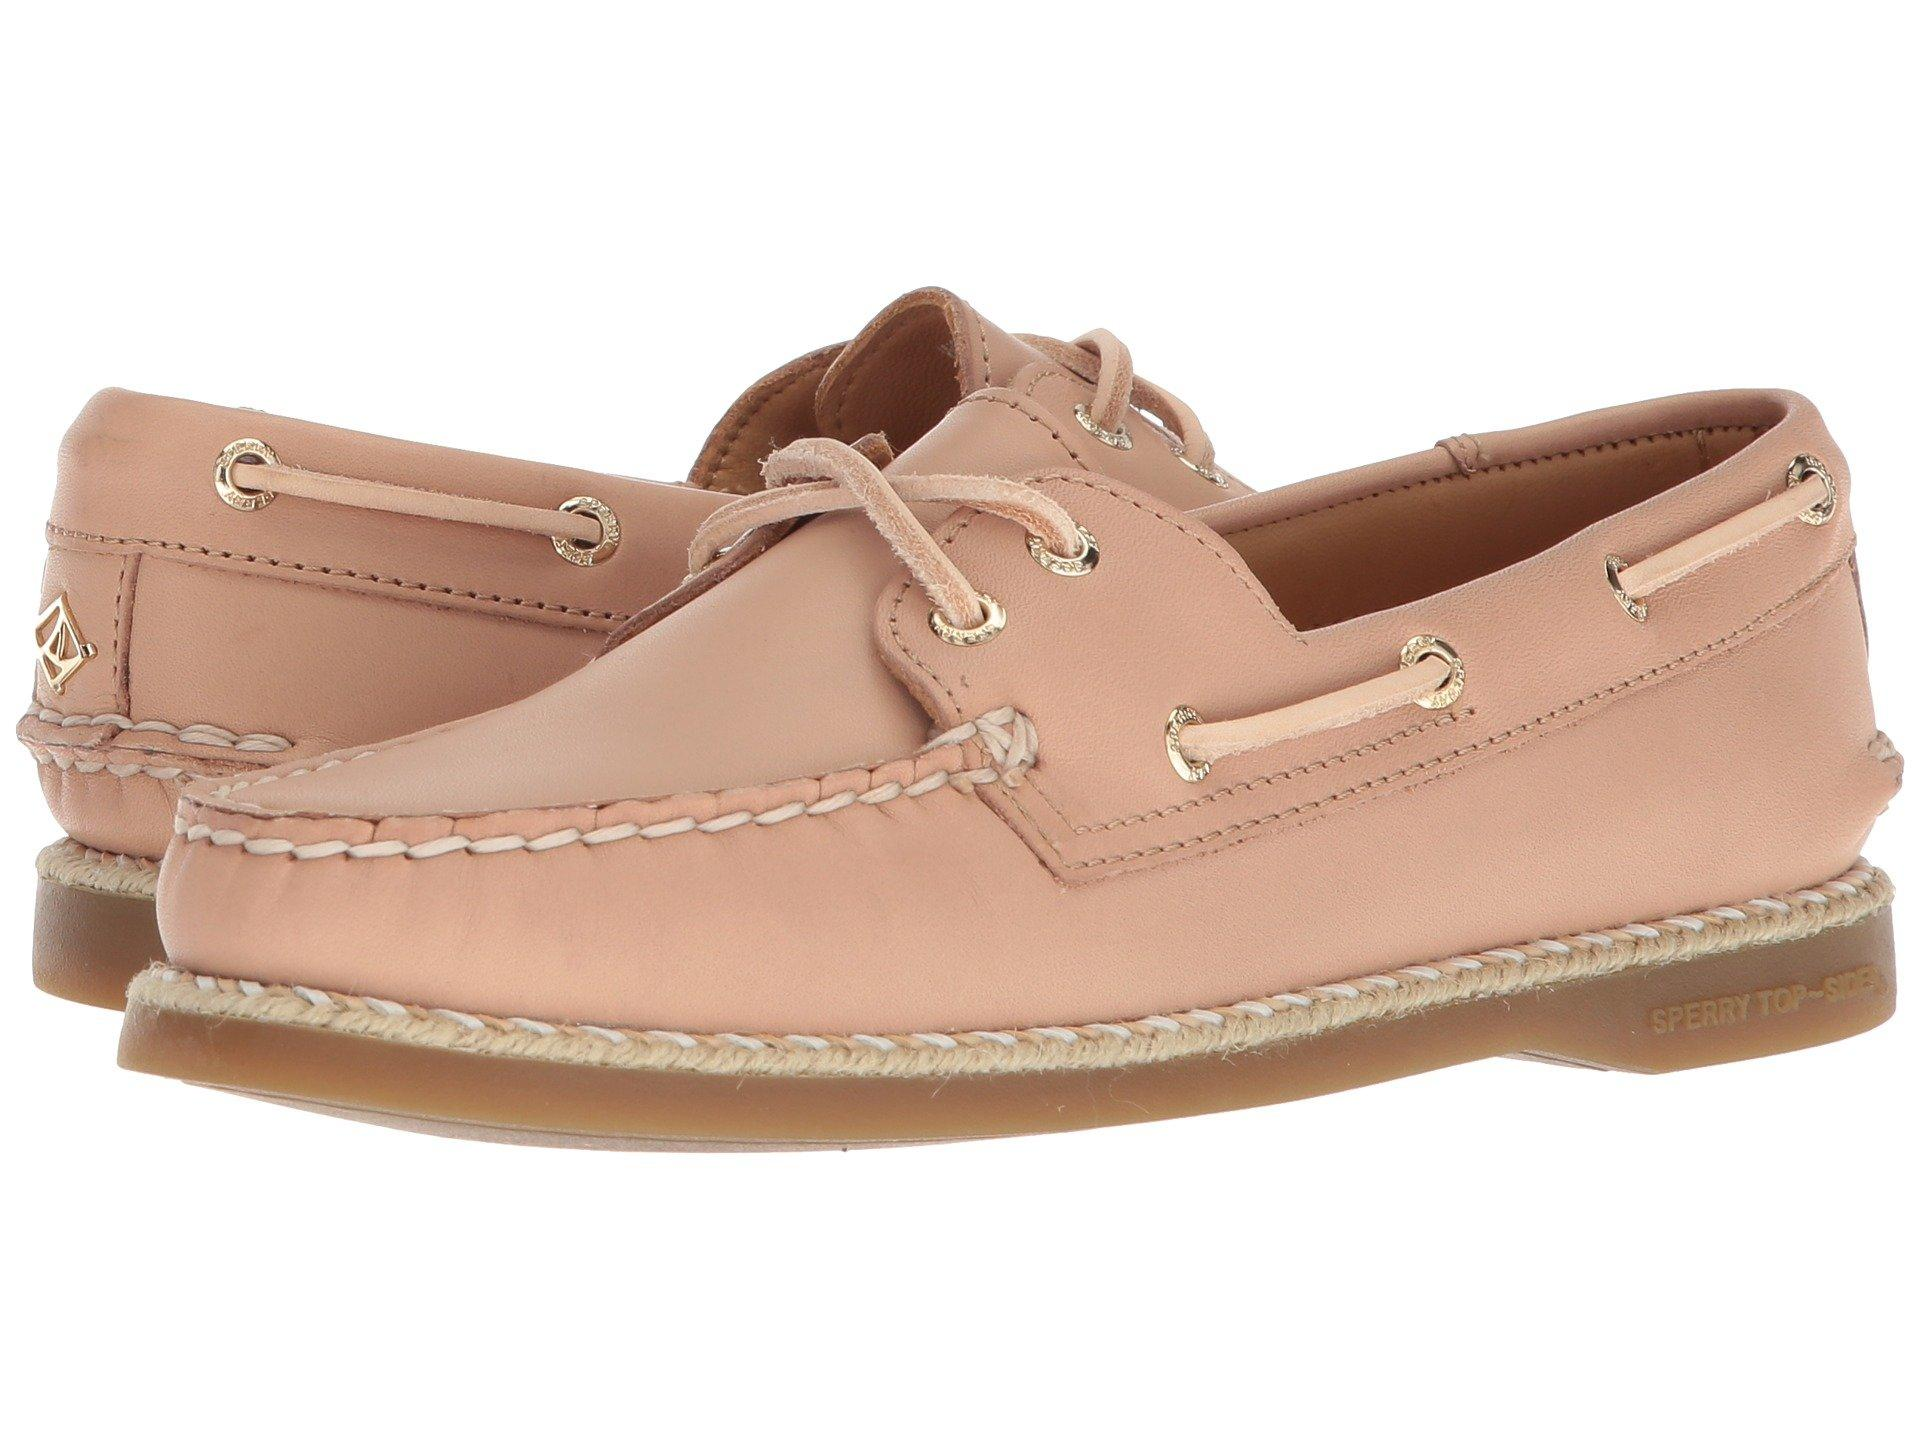 d654cd3440 Lyst - Sperry Top-Sider A o 2-eye Braided Jute Welt